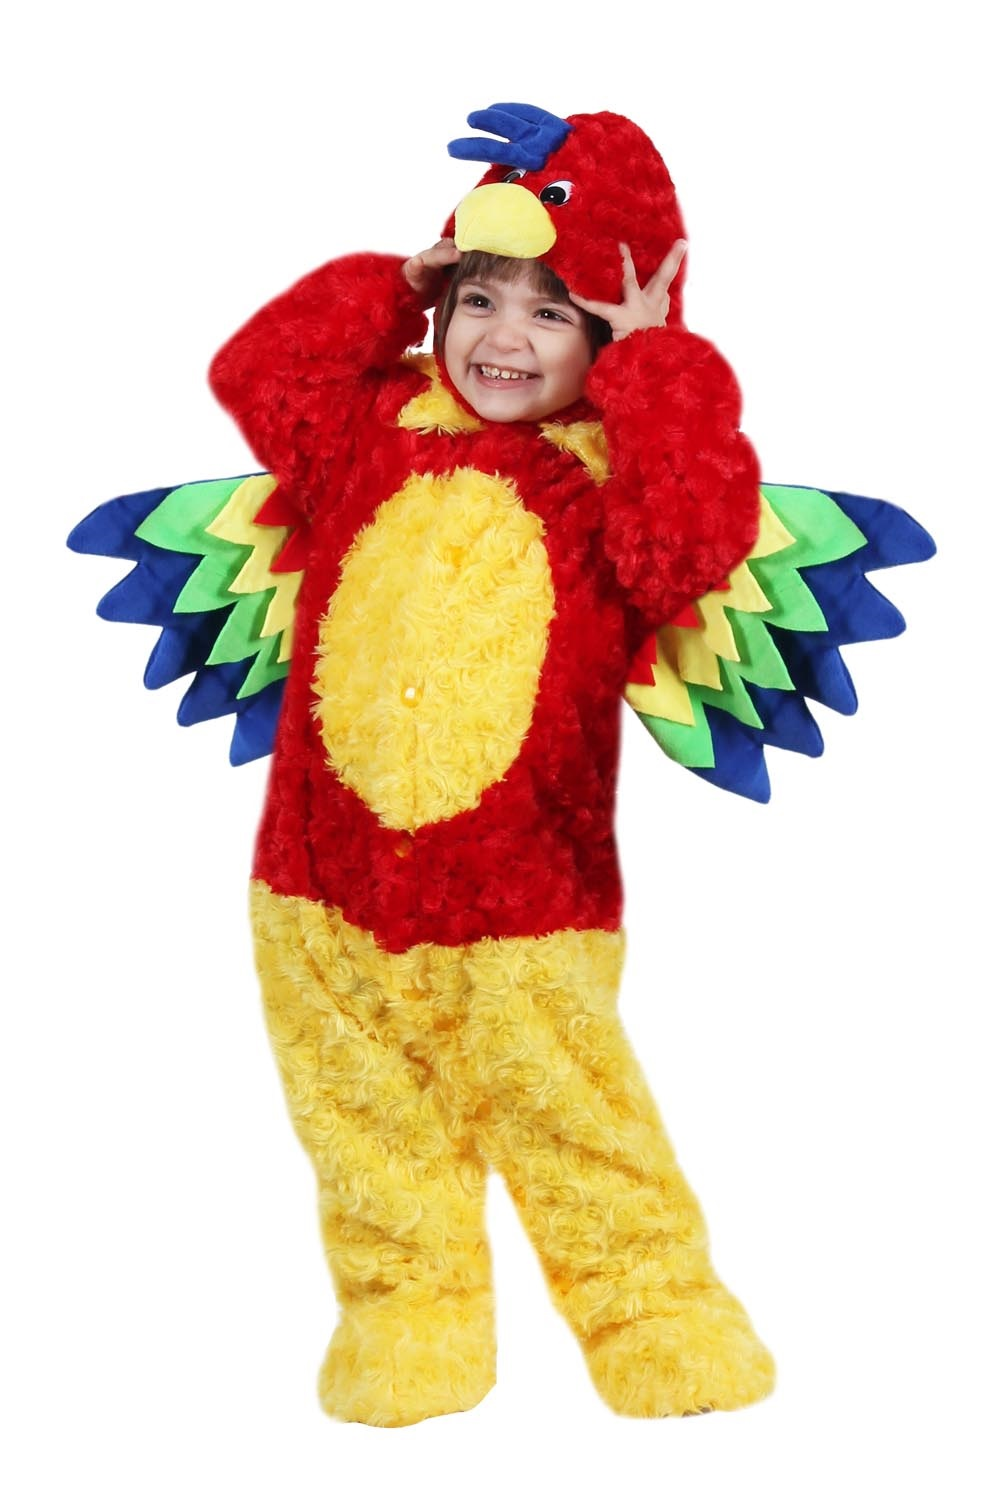 PE0759 - da 3 a 6 anni - the cartoon world - VESTITO COSTUME ... 92d1e8286060